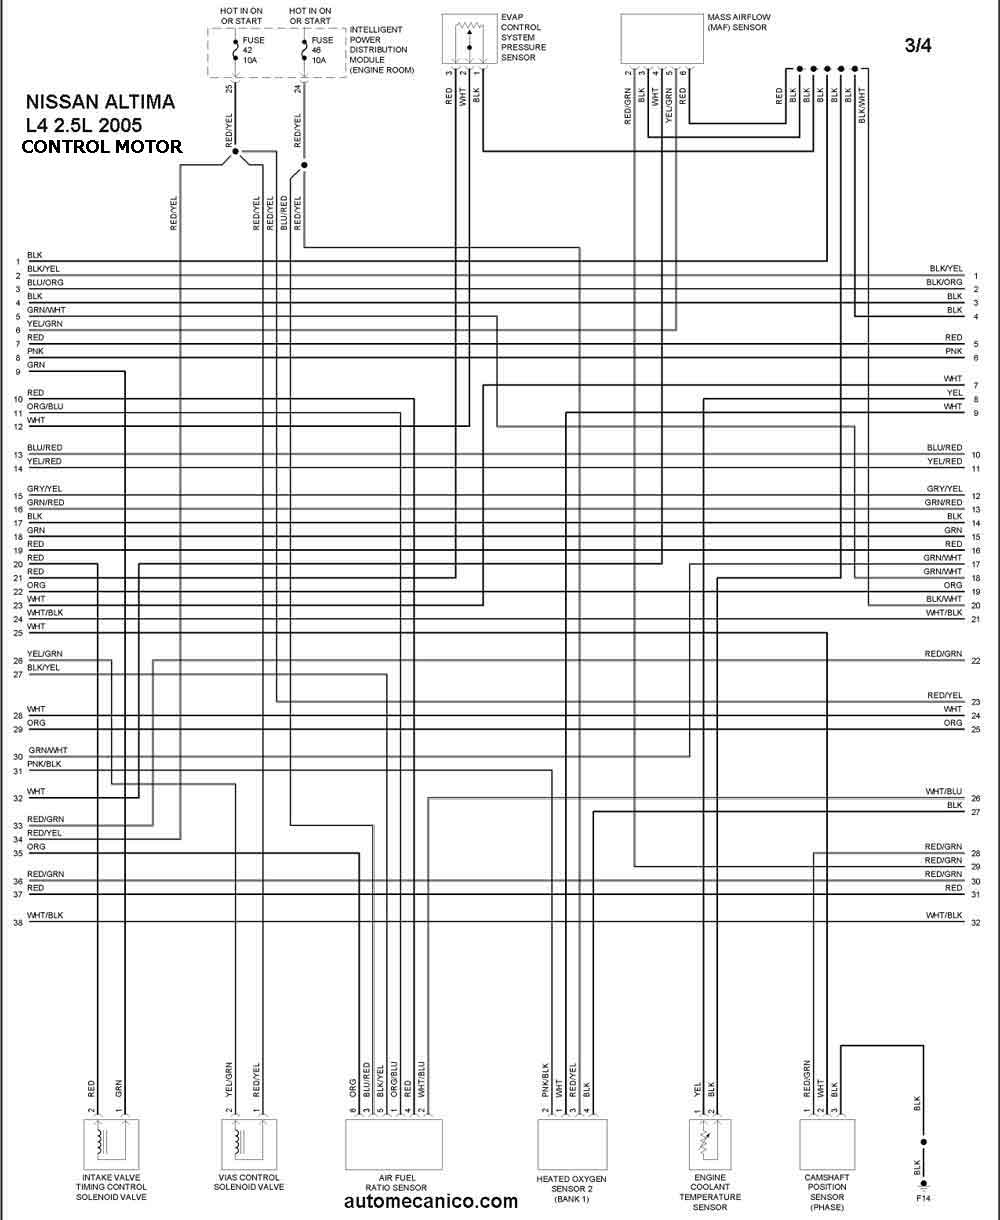 2004 Nissan Maxima Wiring Diagram And Engine 2011 Altima Fuse Box Vehiclepad 2006 Pertaining To